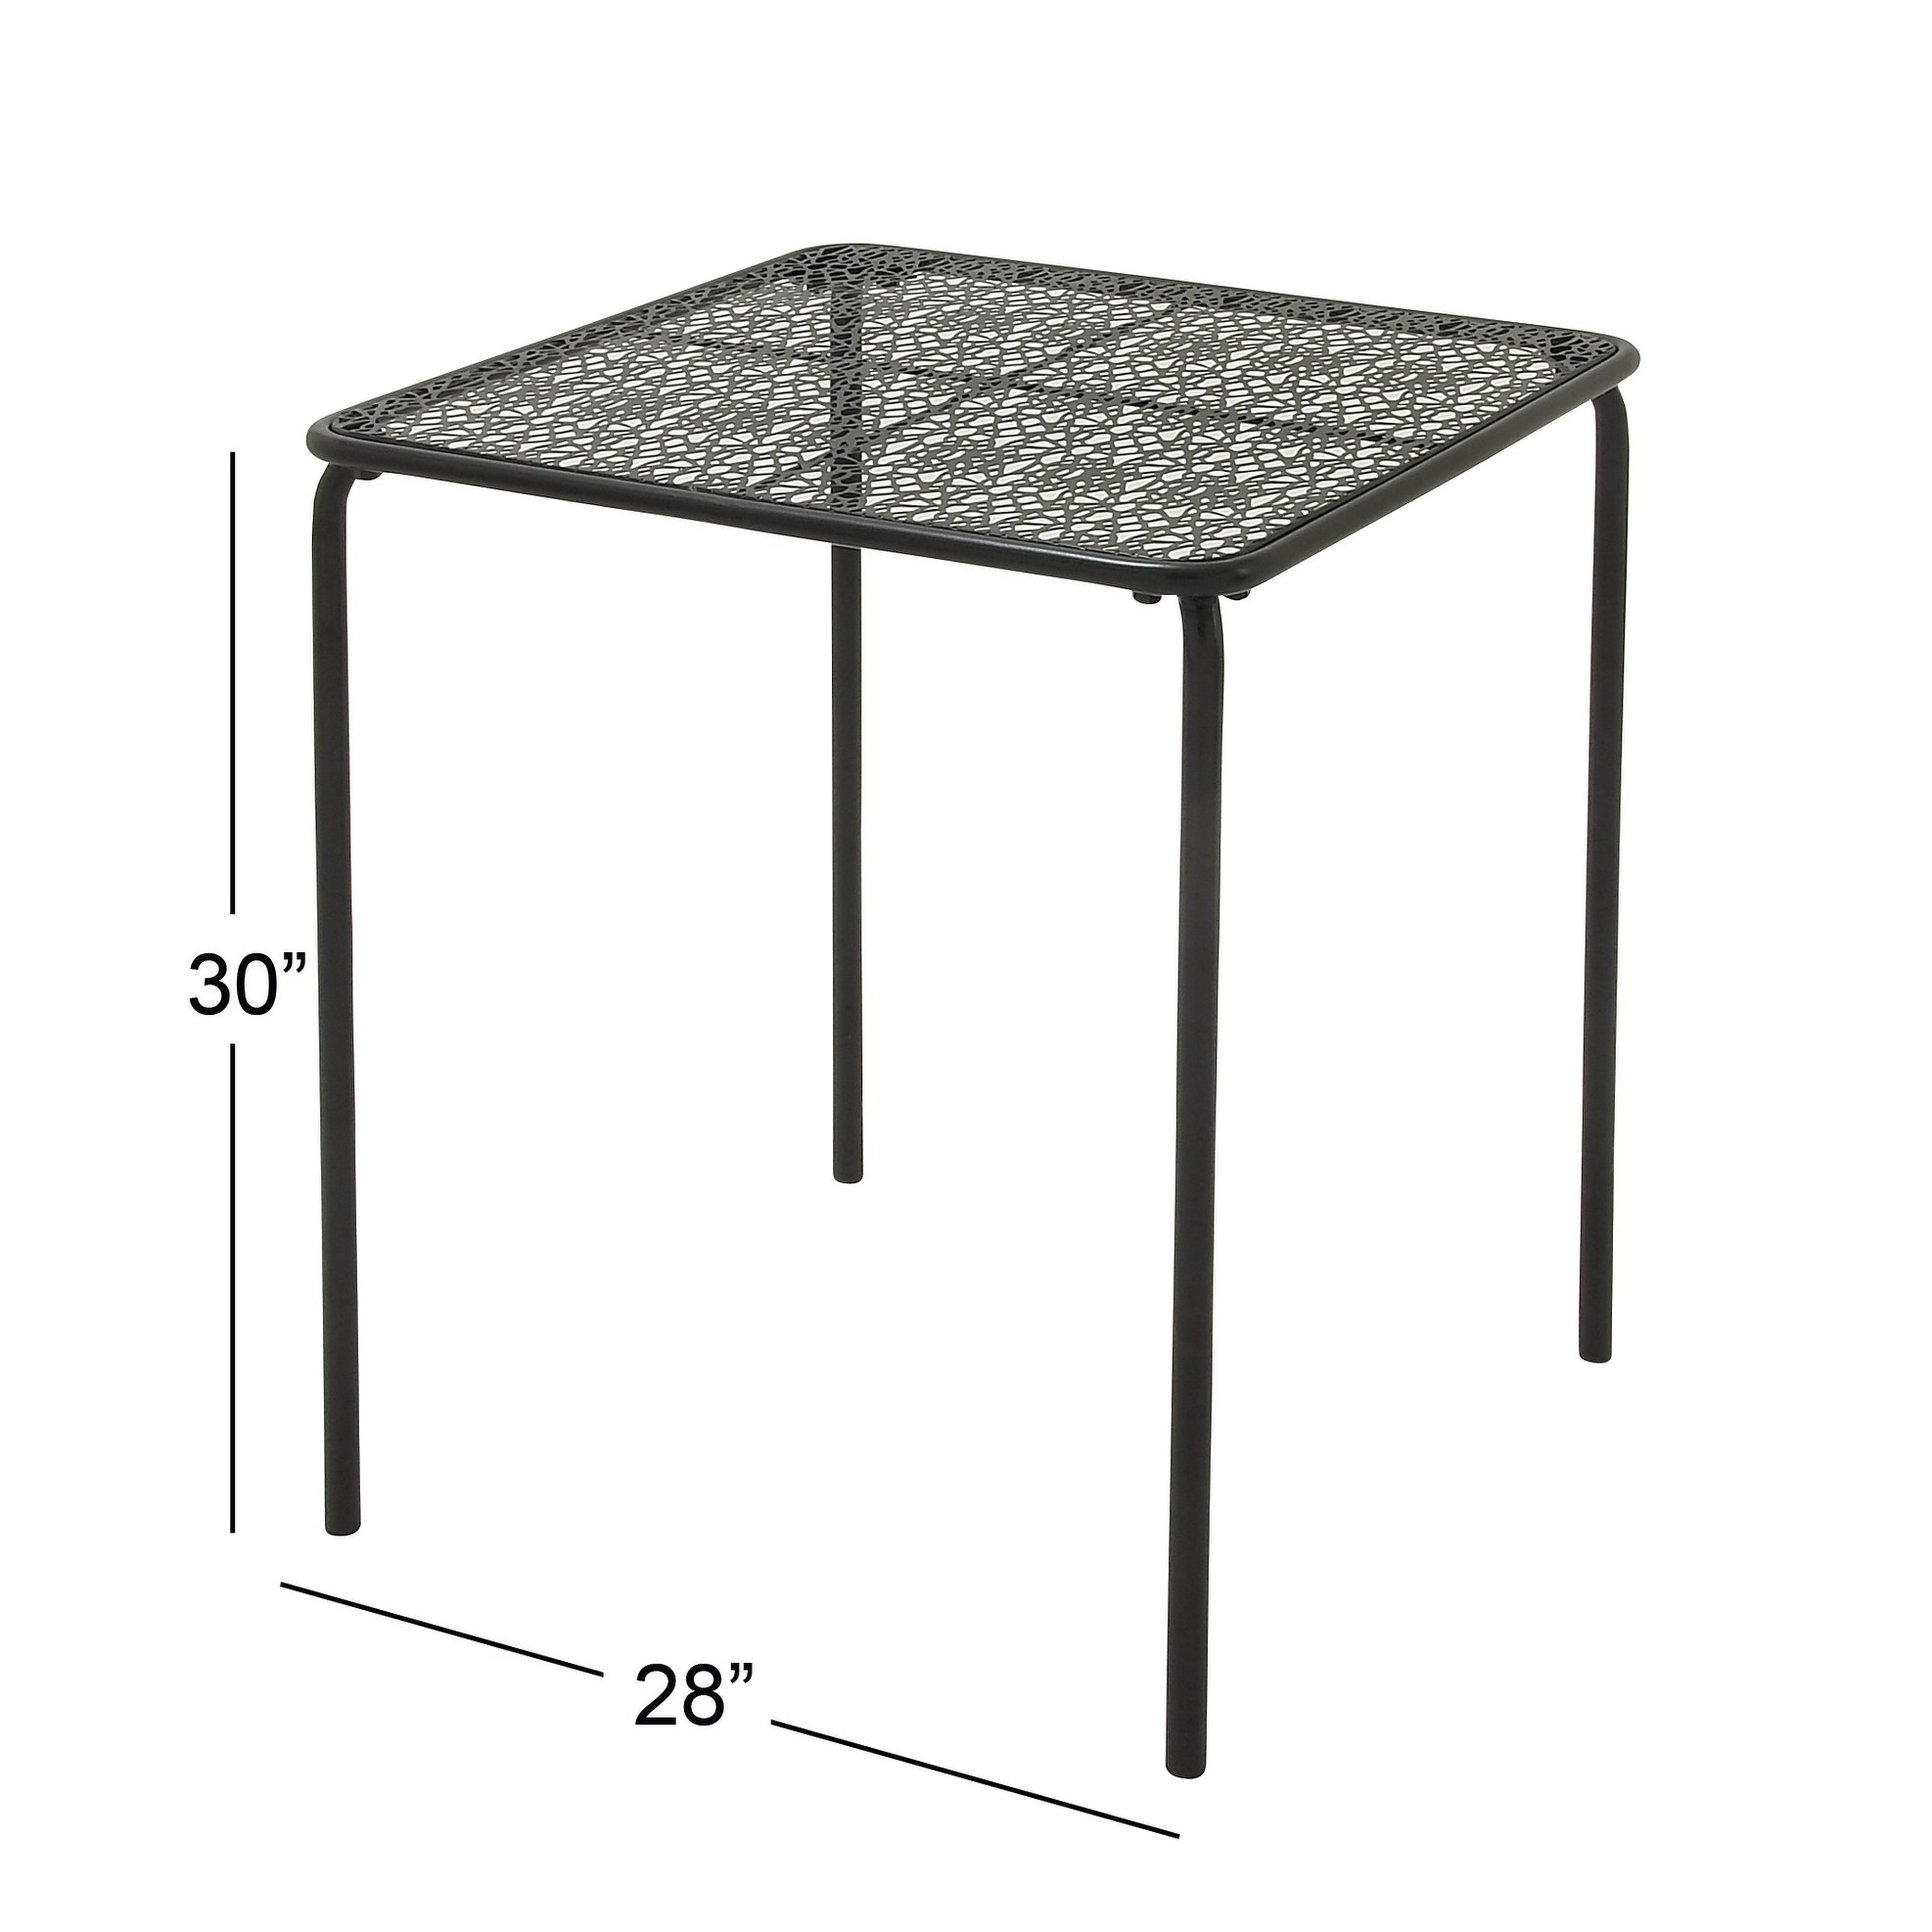 modern inch lace designed iron outdoor table studio bombay outdoors pineapple umbrella accent free shipping today dark brown rattan coffee office cupboard corner display cabinet